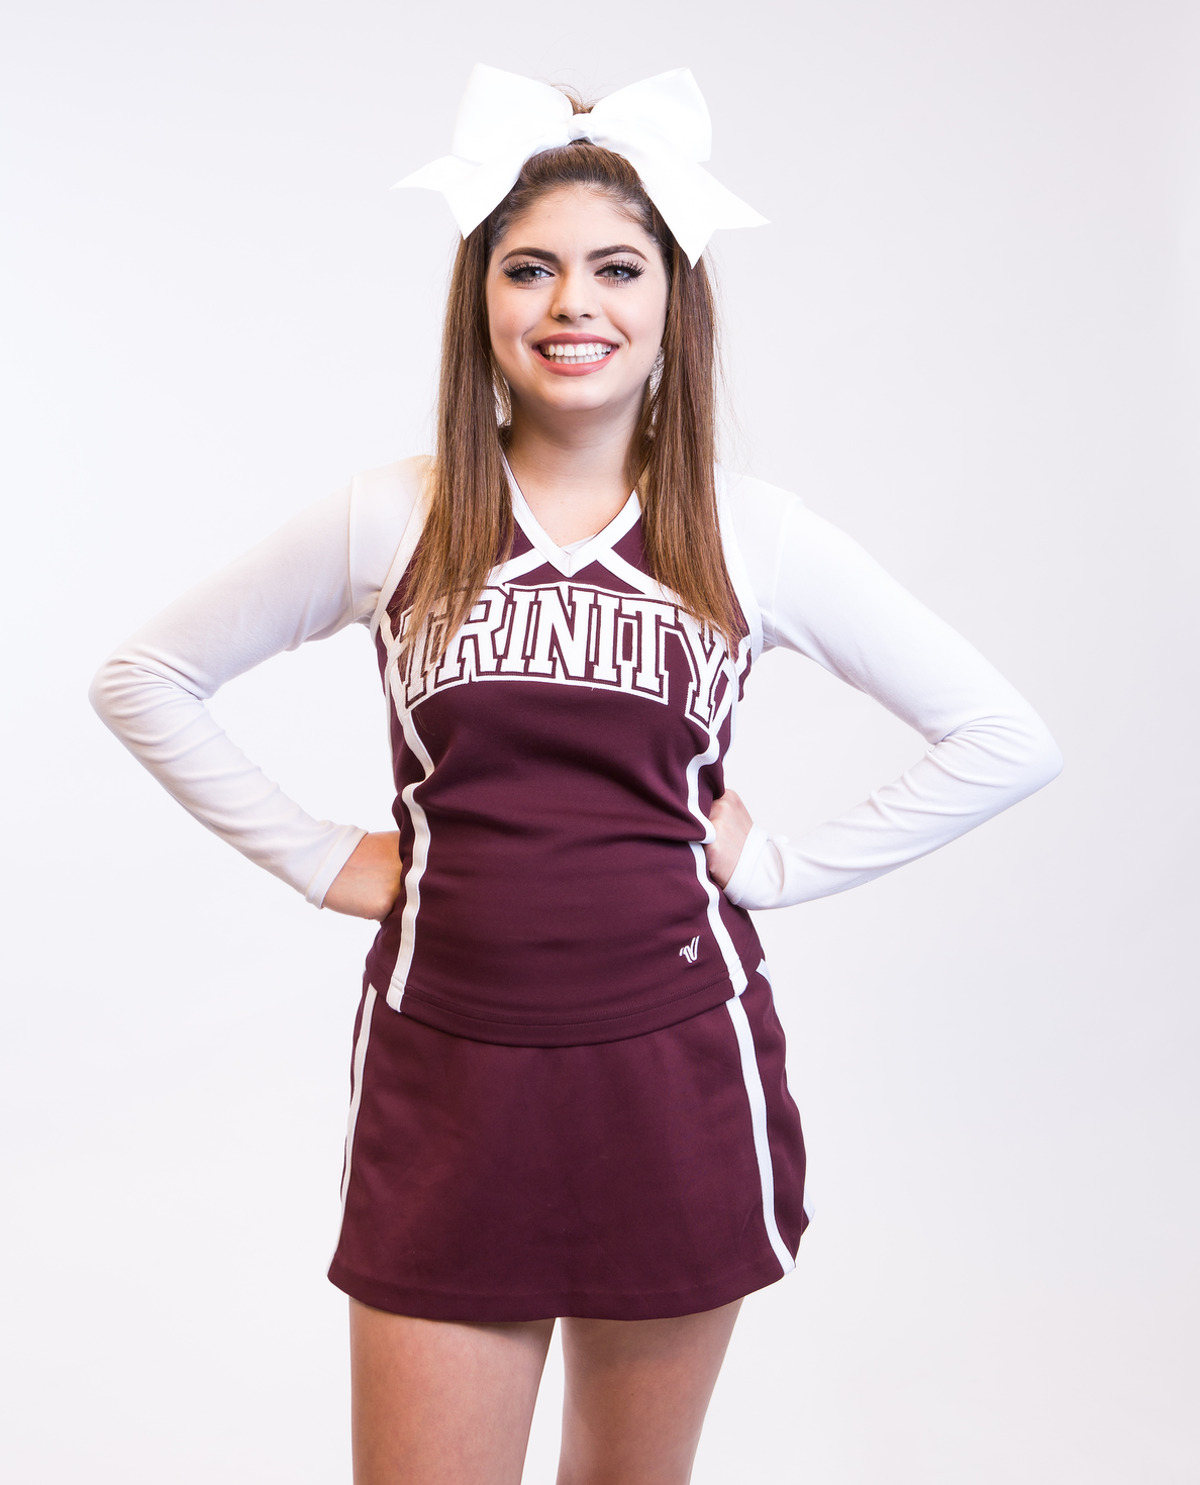 Texas Rangers are investigating the death of Trinity University student and cheerleader Cayley Mandadi as a homicide.